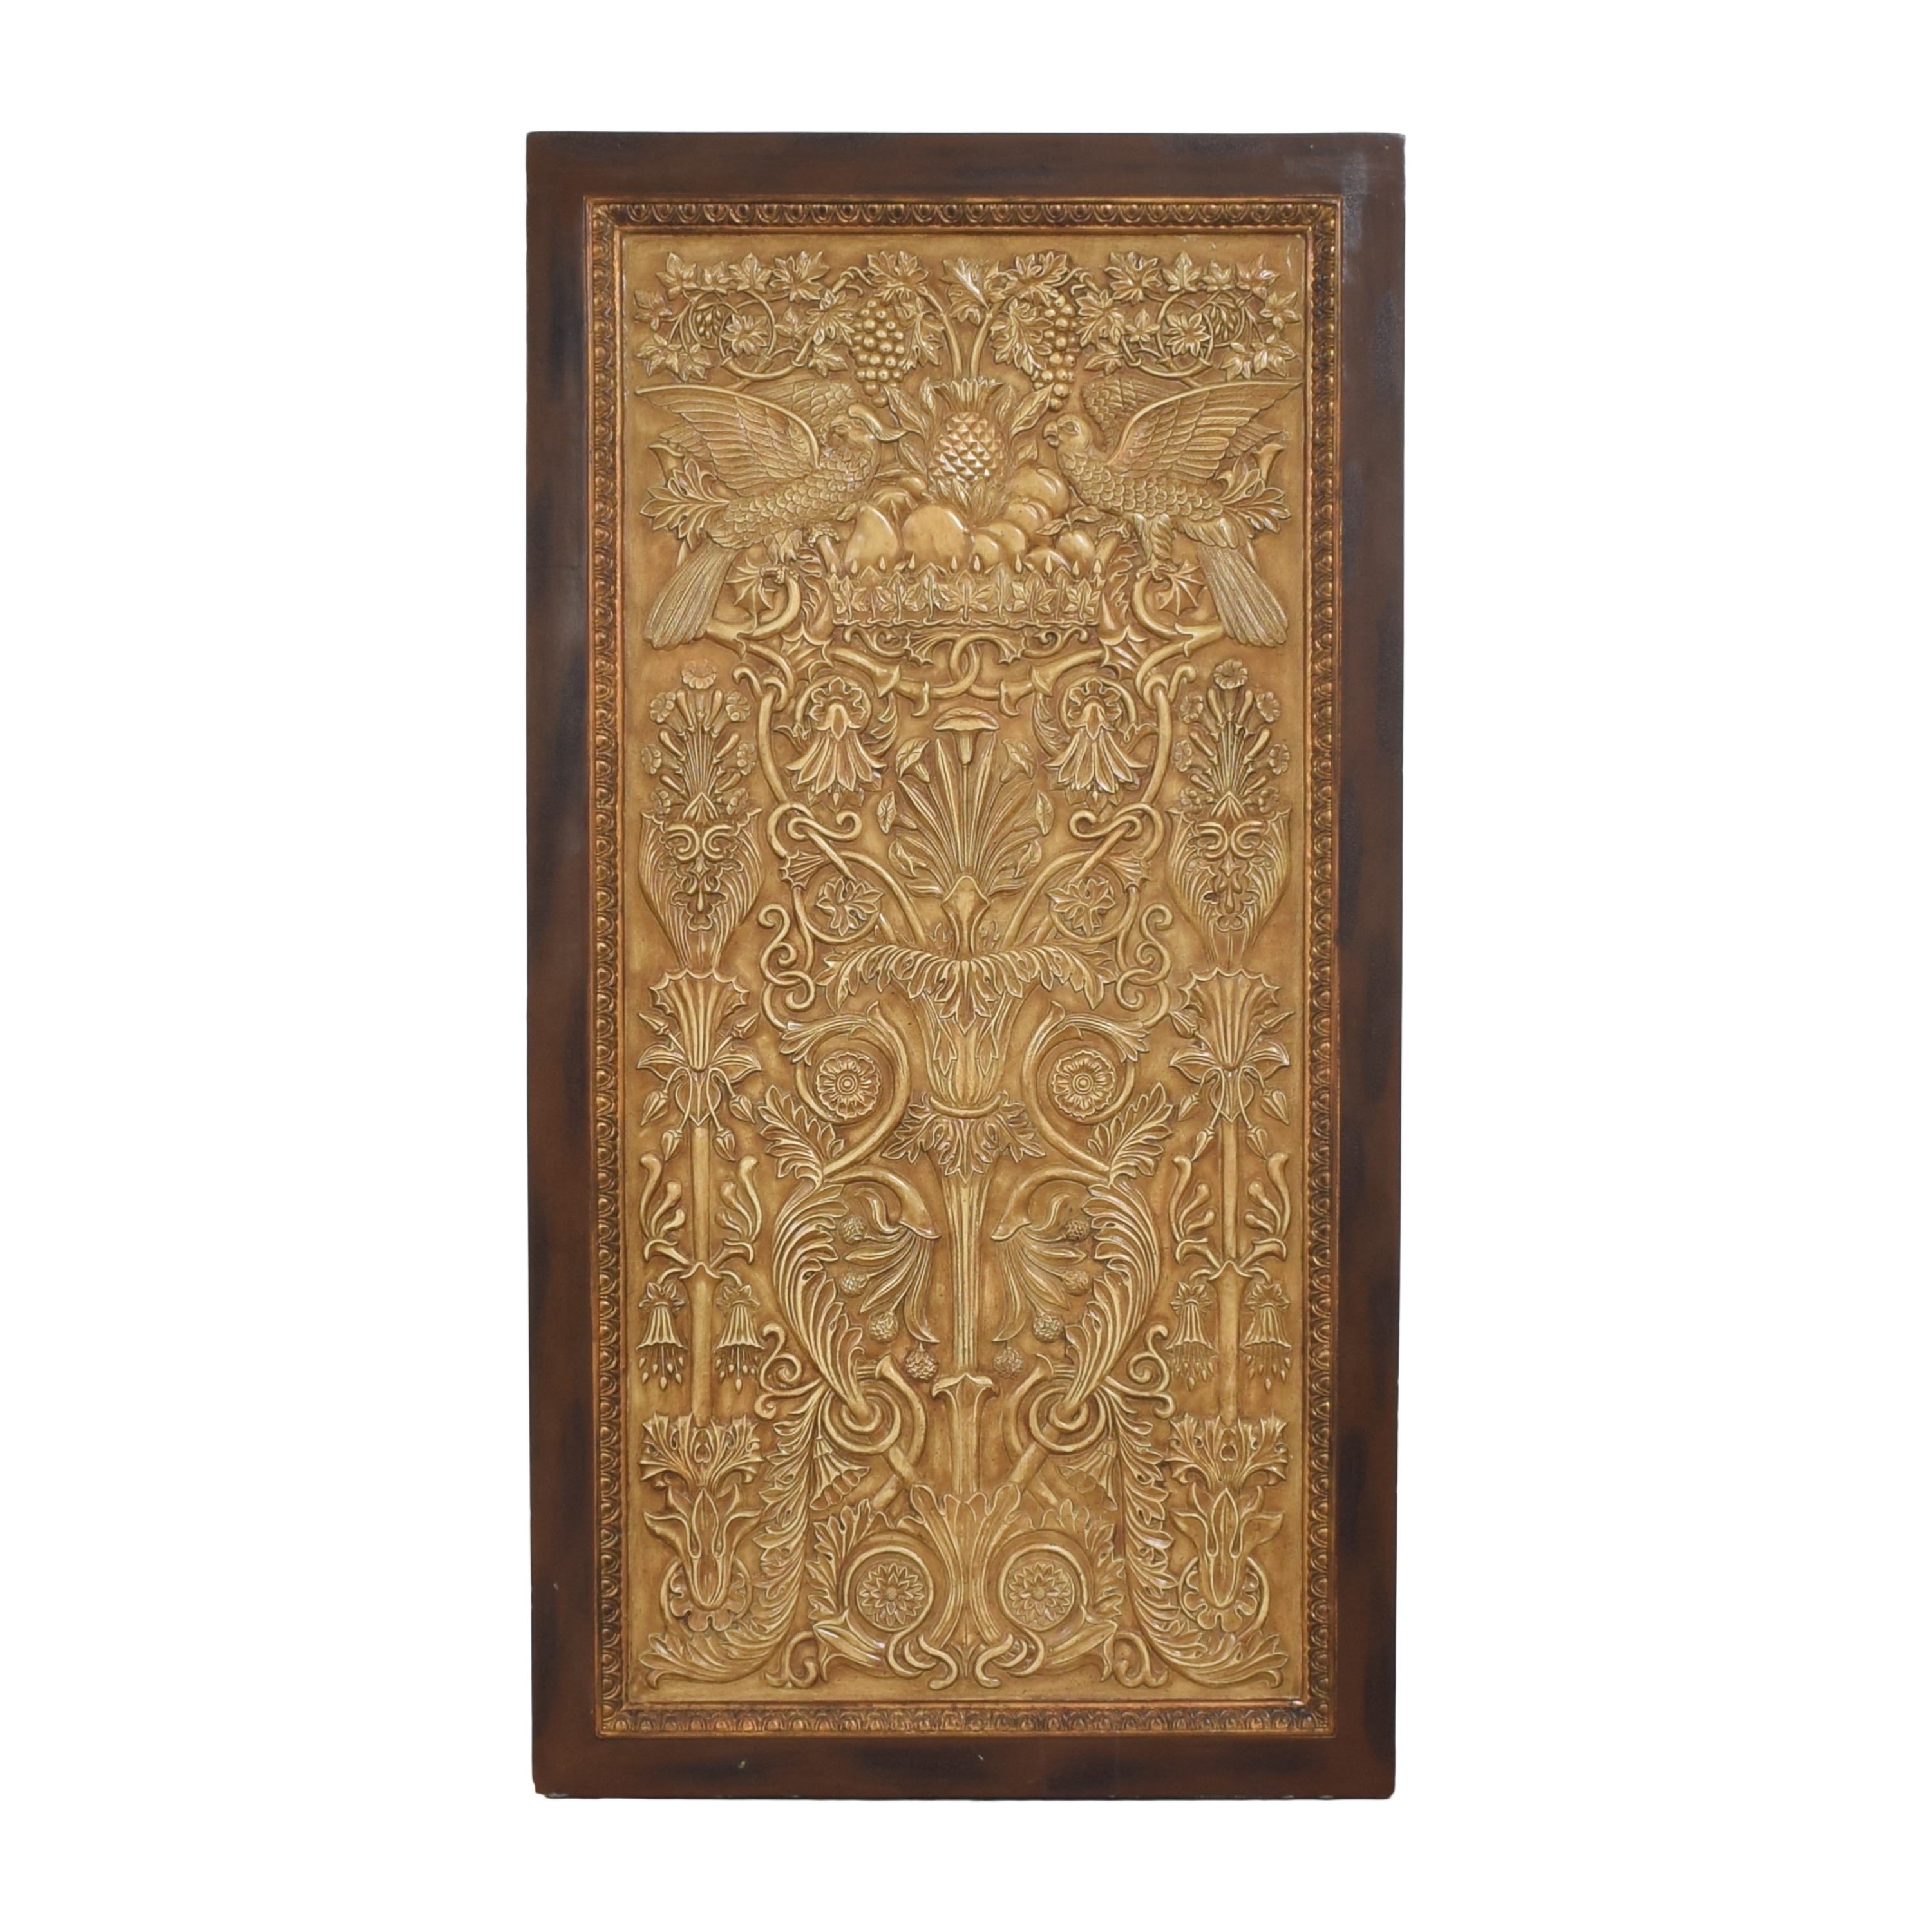 Decorative Framed Wall Art gold and dark brown